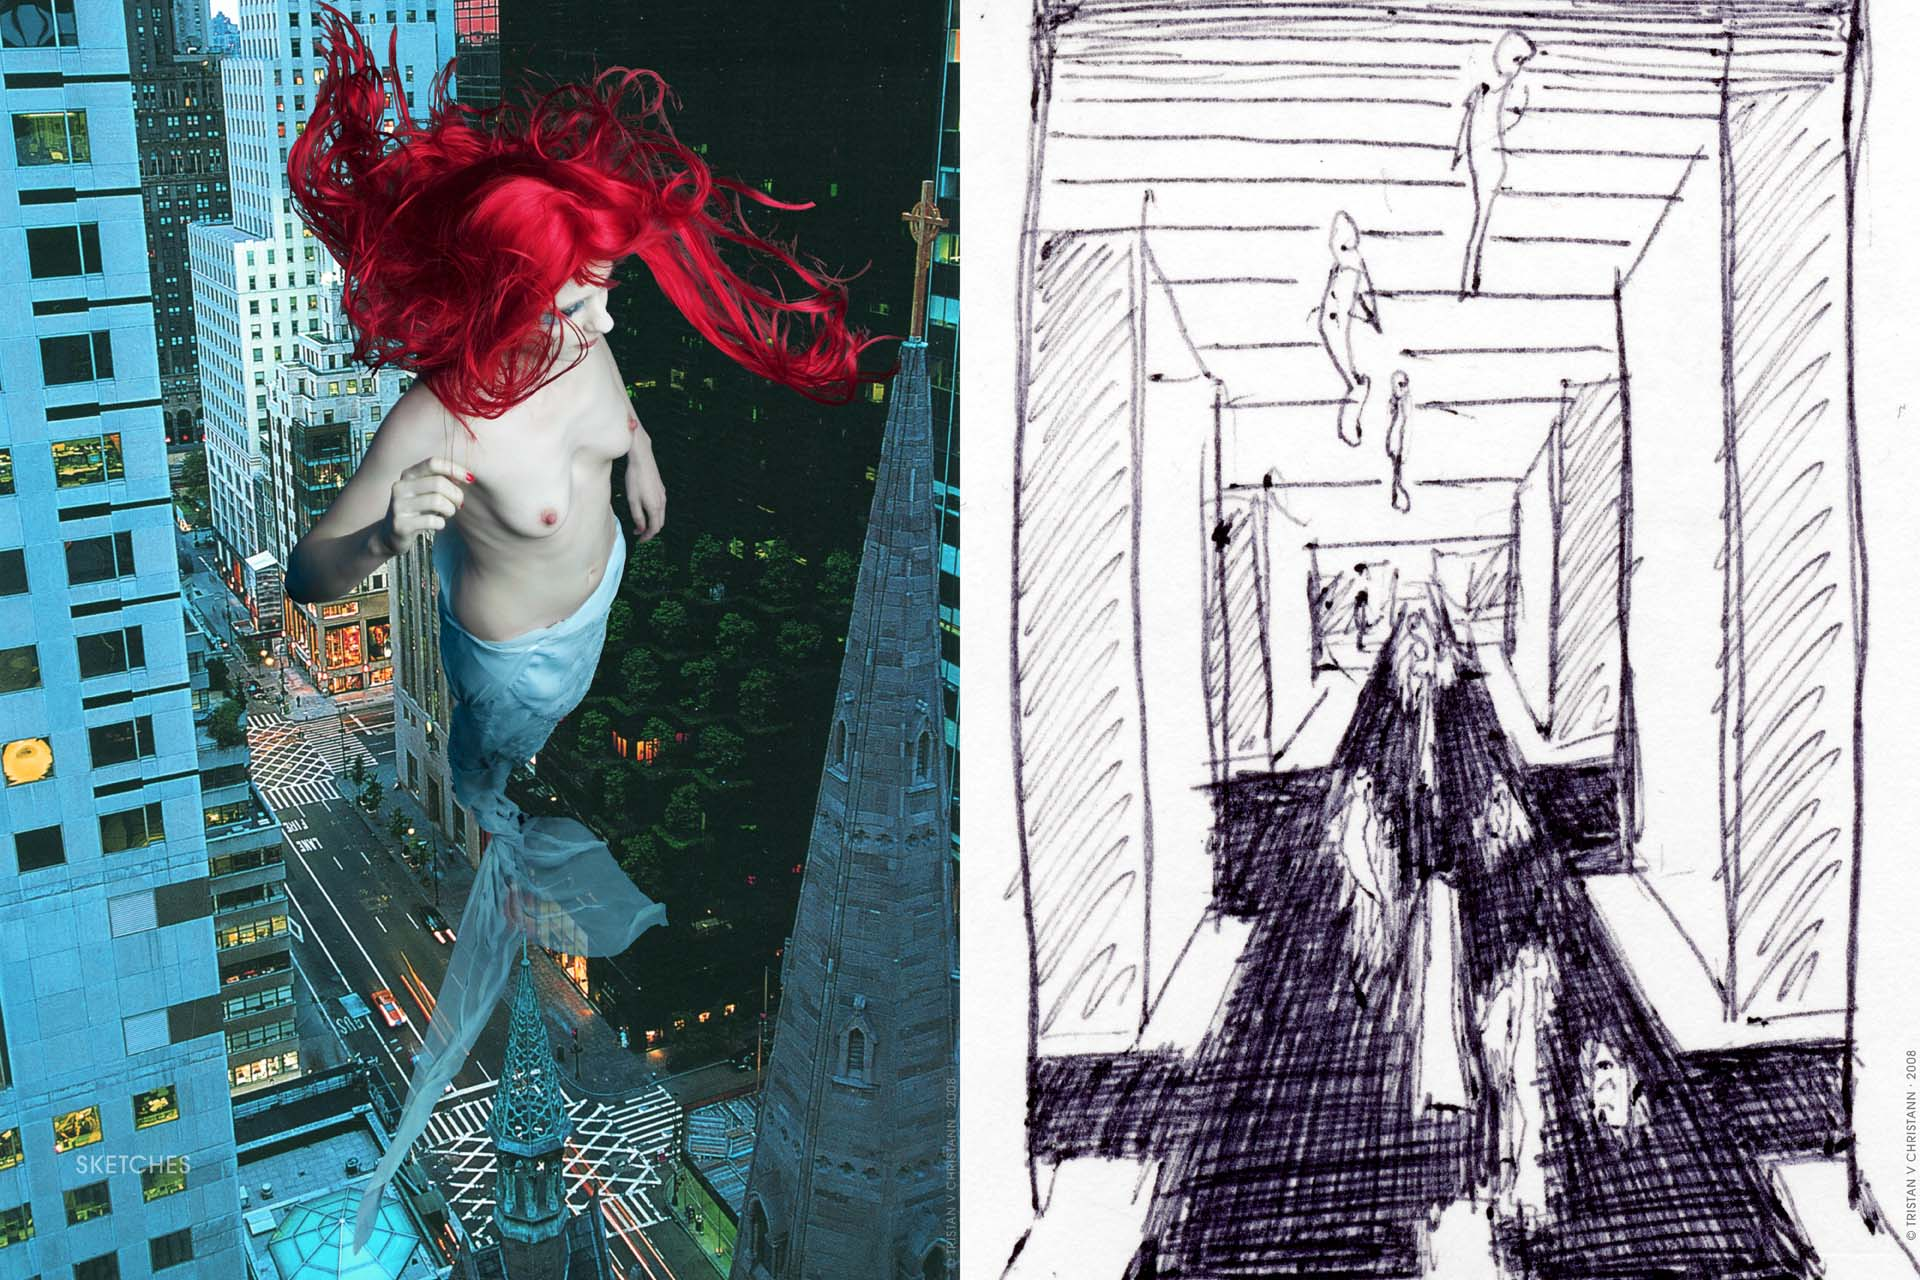 Tristan V Christann, Fantasy, Gaia Award, Moondance Filmfestival, Spirit of Da Vinci, Manhattan Mermaid_18 Sketches 2009